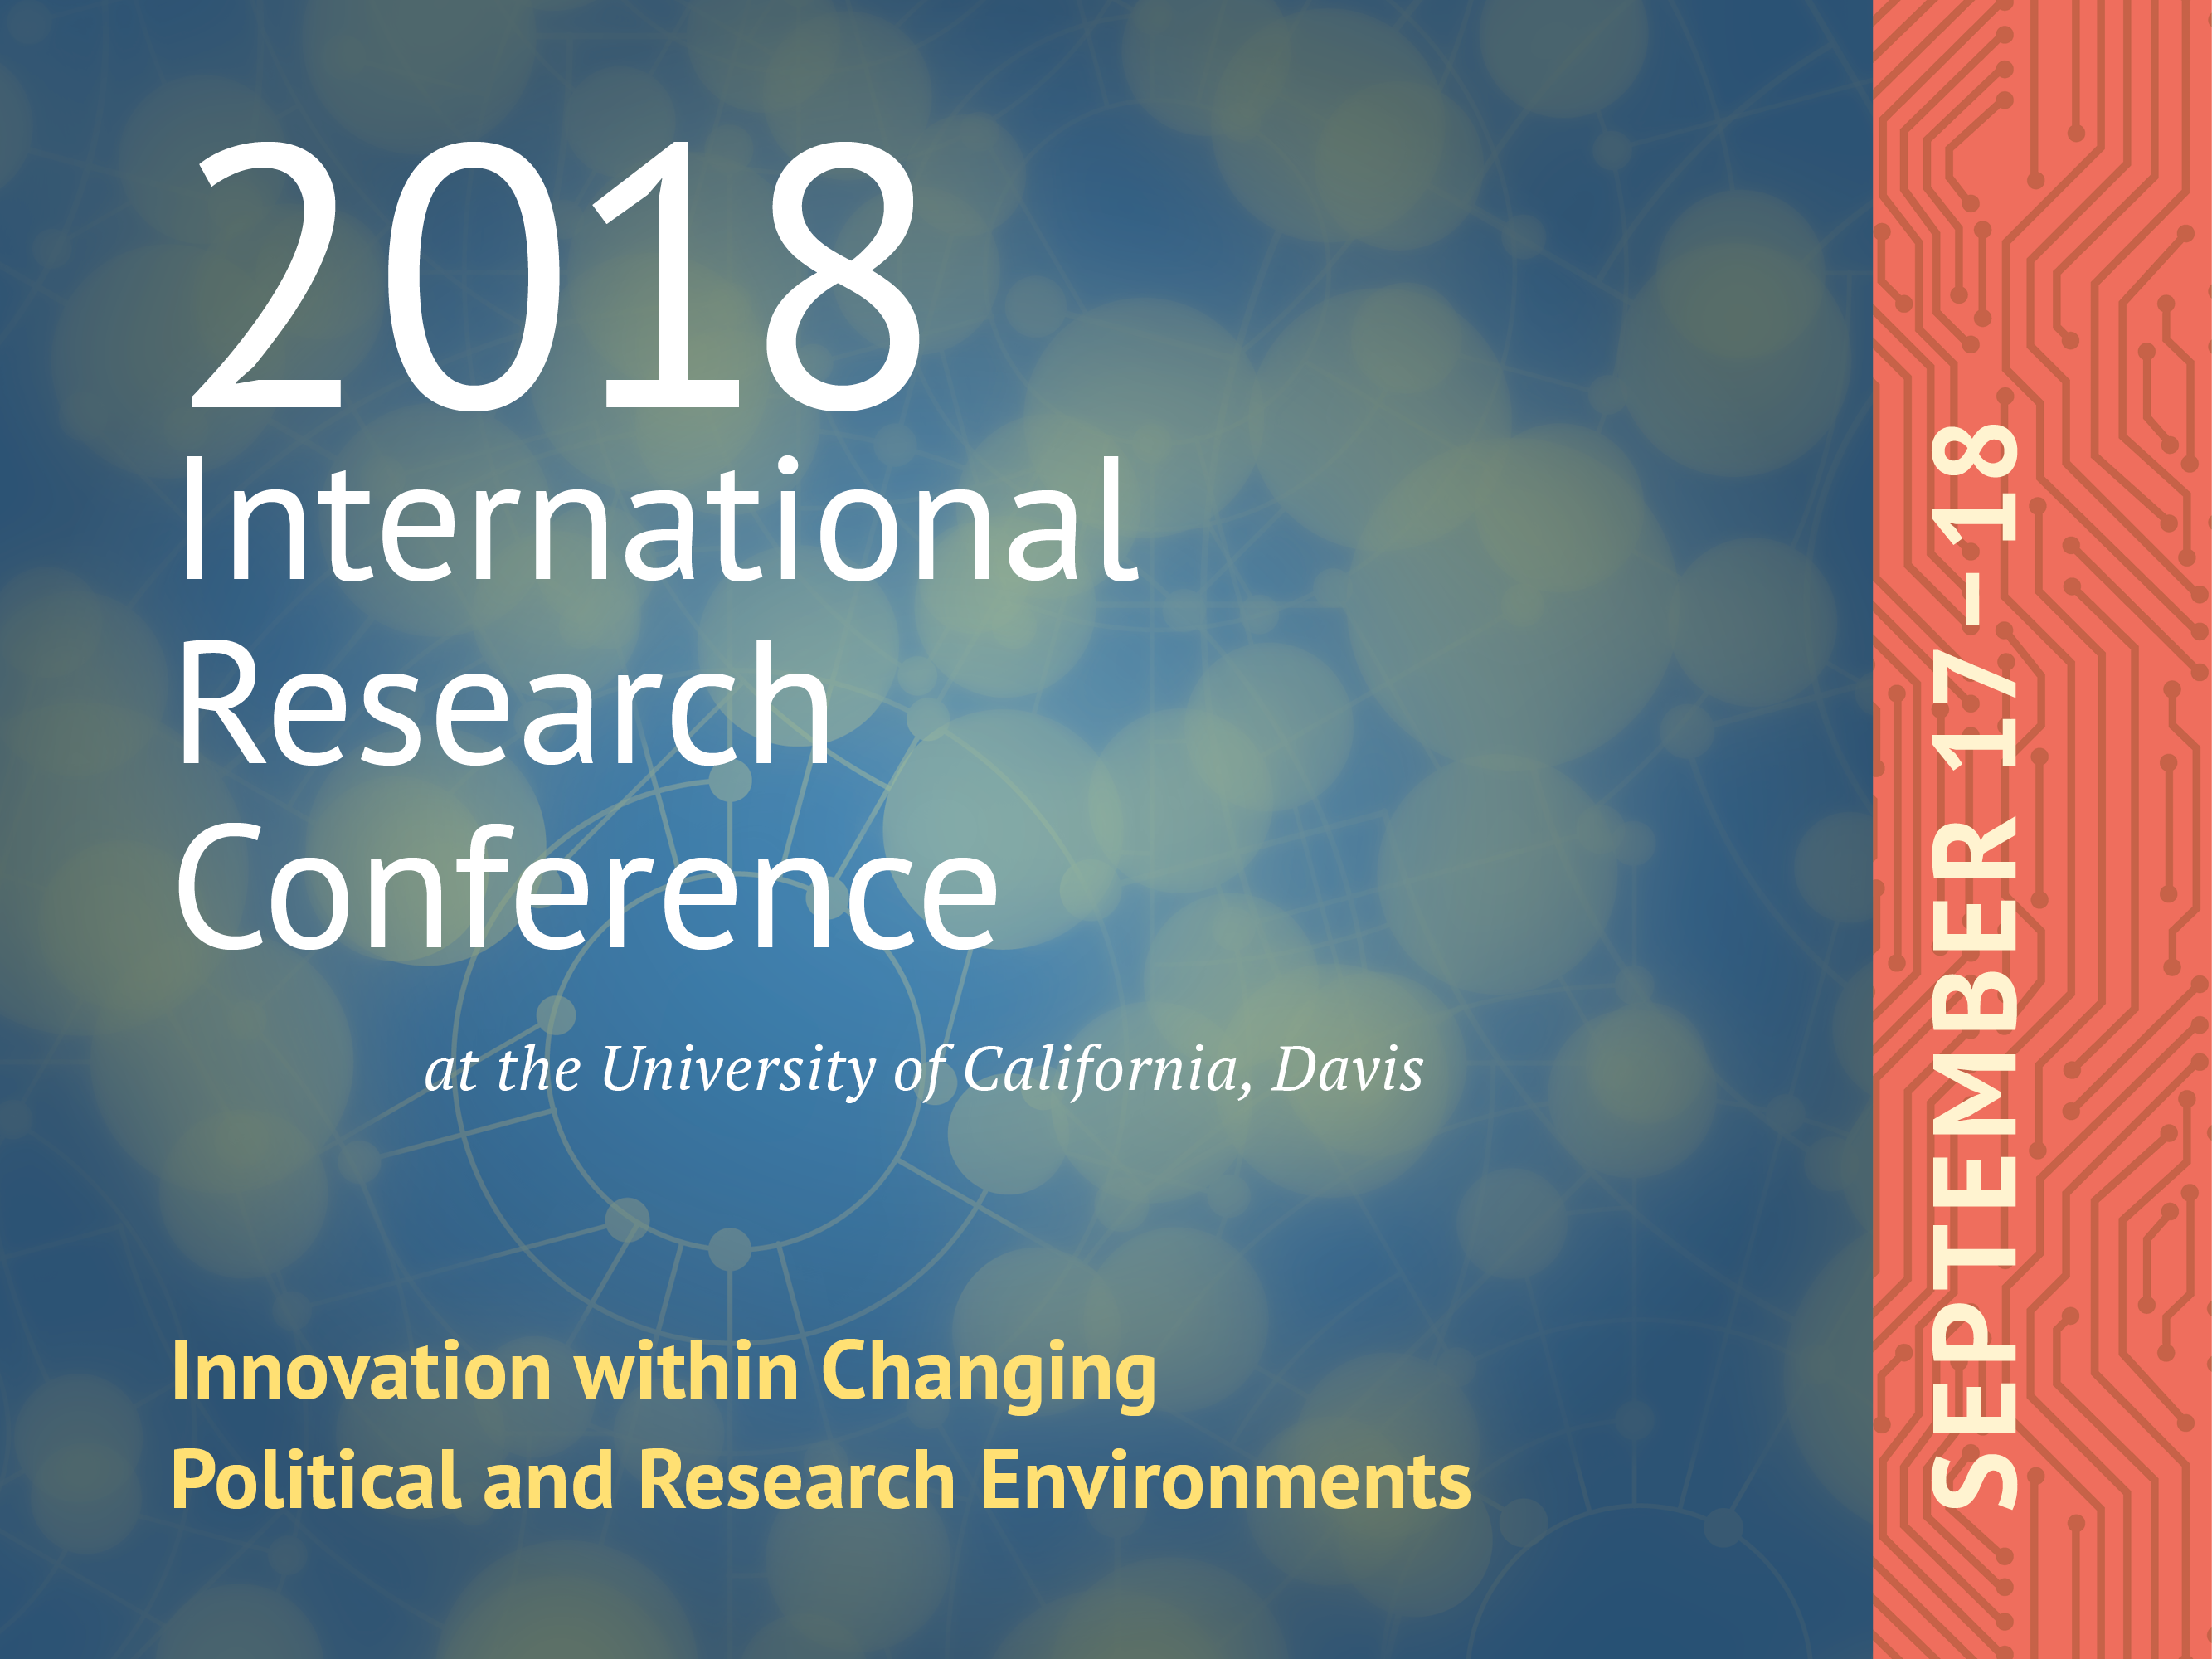 2018 International Research Conference at UC Davis | Global